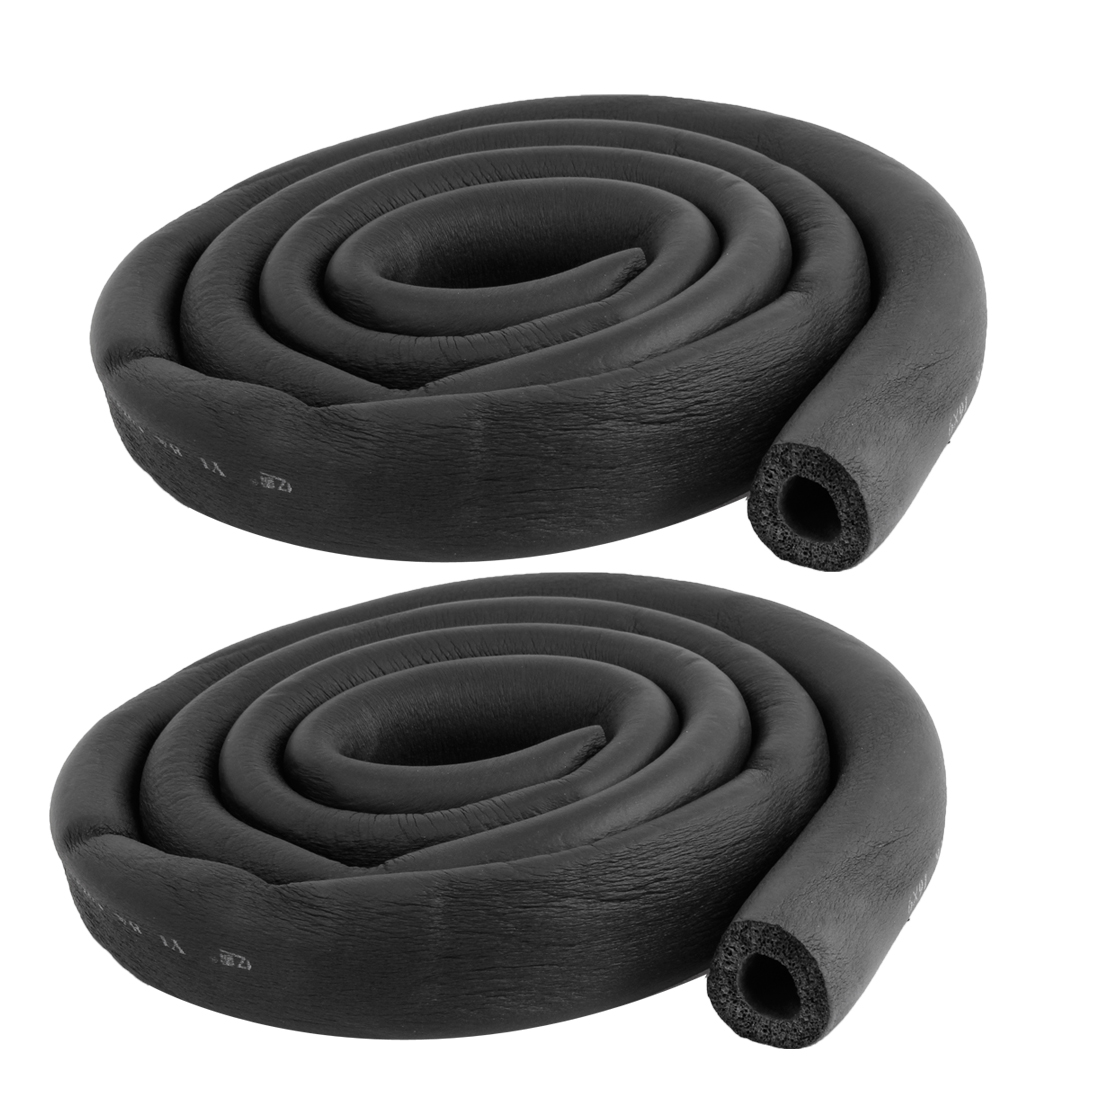 "2 Pcs Foam Hose 5/8"" x 3/8"" Air Conditioner Heat Insulation Pipe Black"